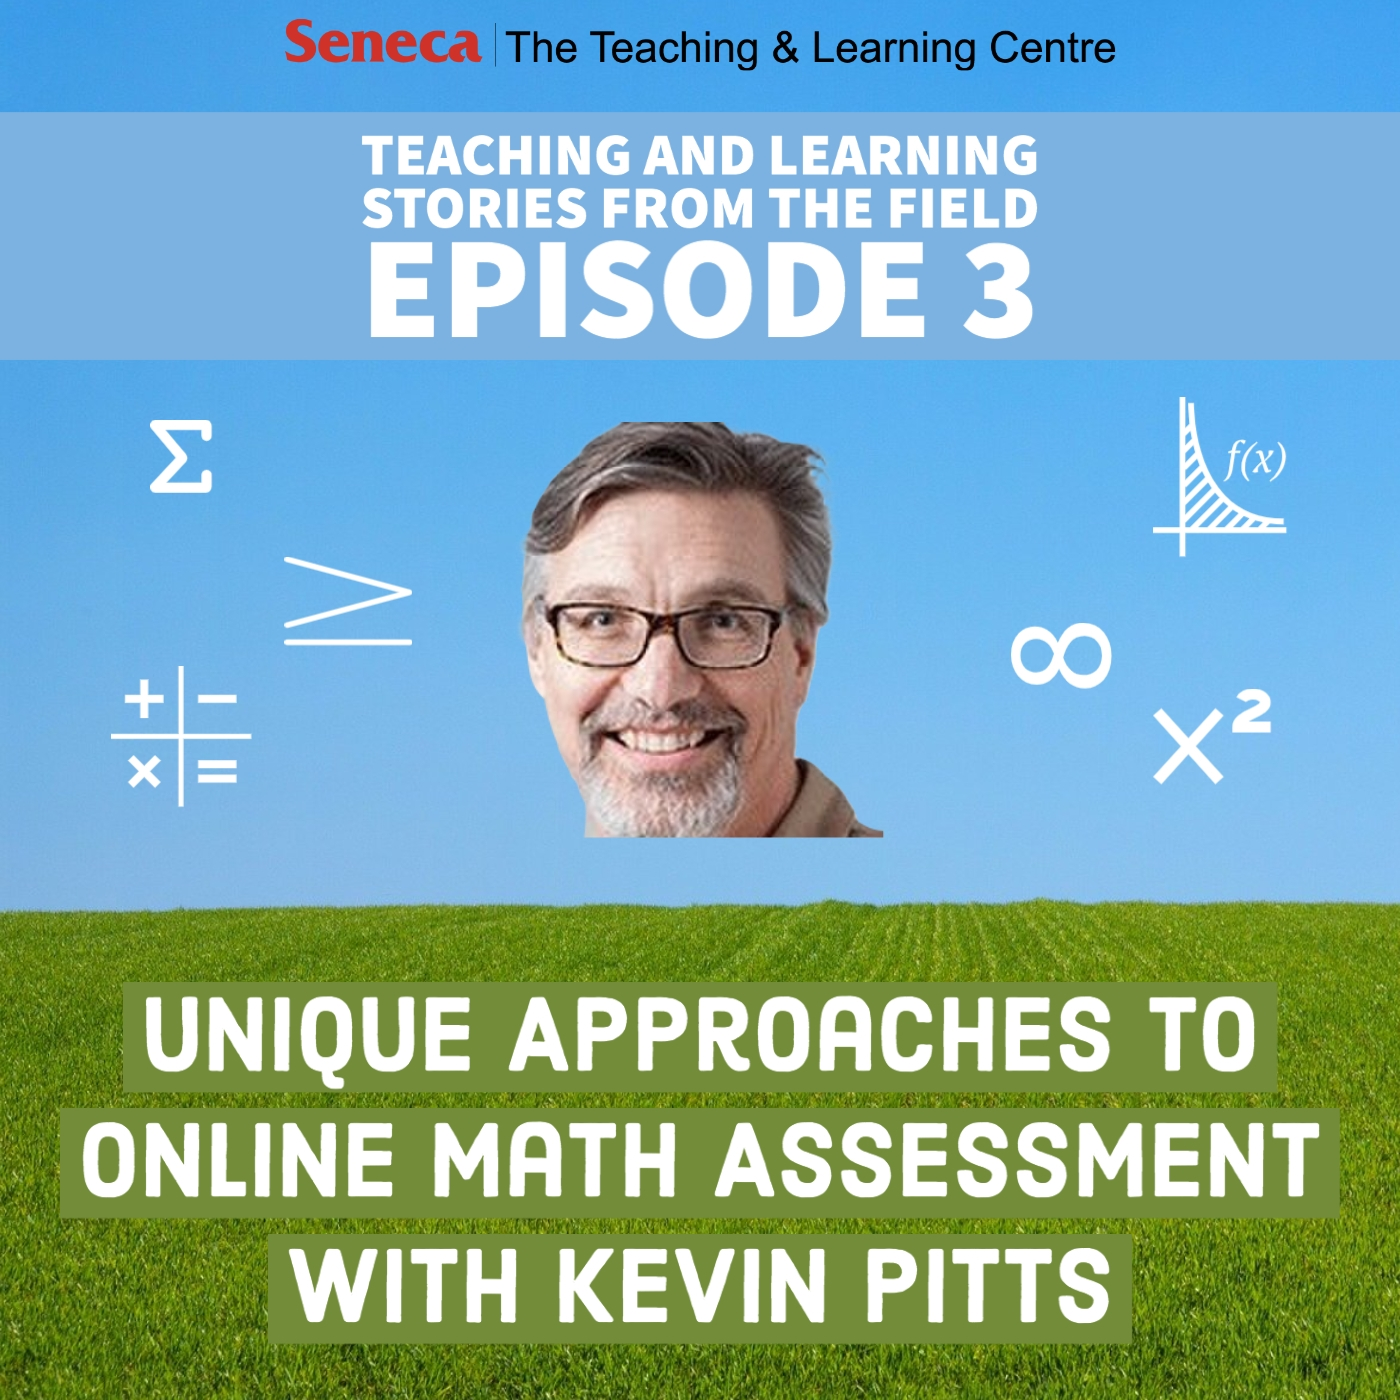 Episode 3 of the Teaching and Learning Stores podcast is called Unique Approaches to Online Math Assessment with Kevin Pitts